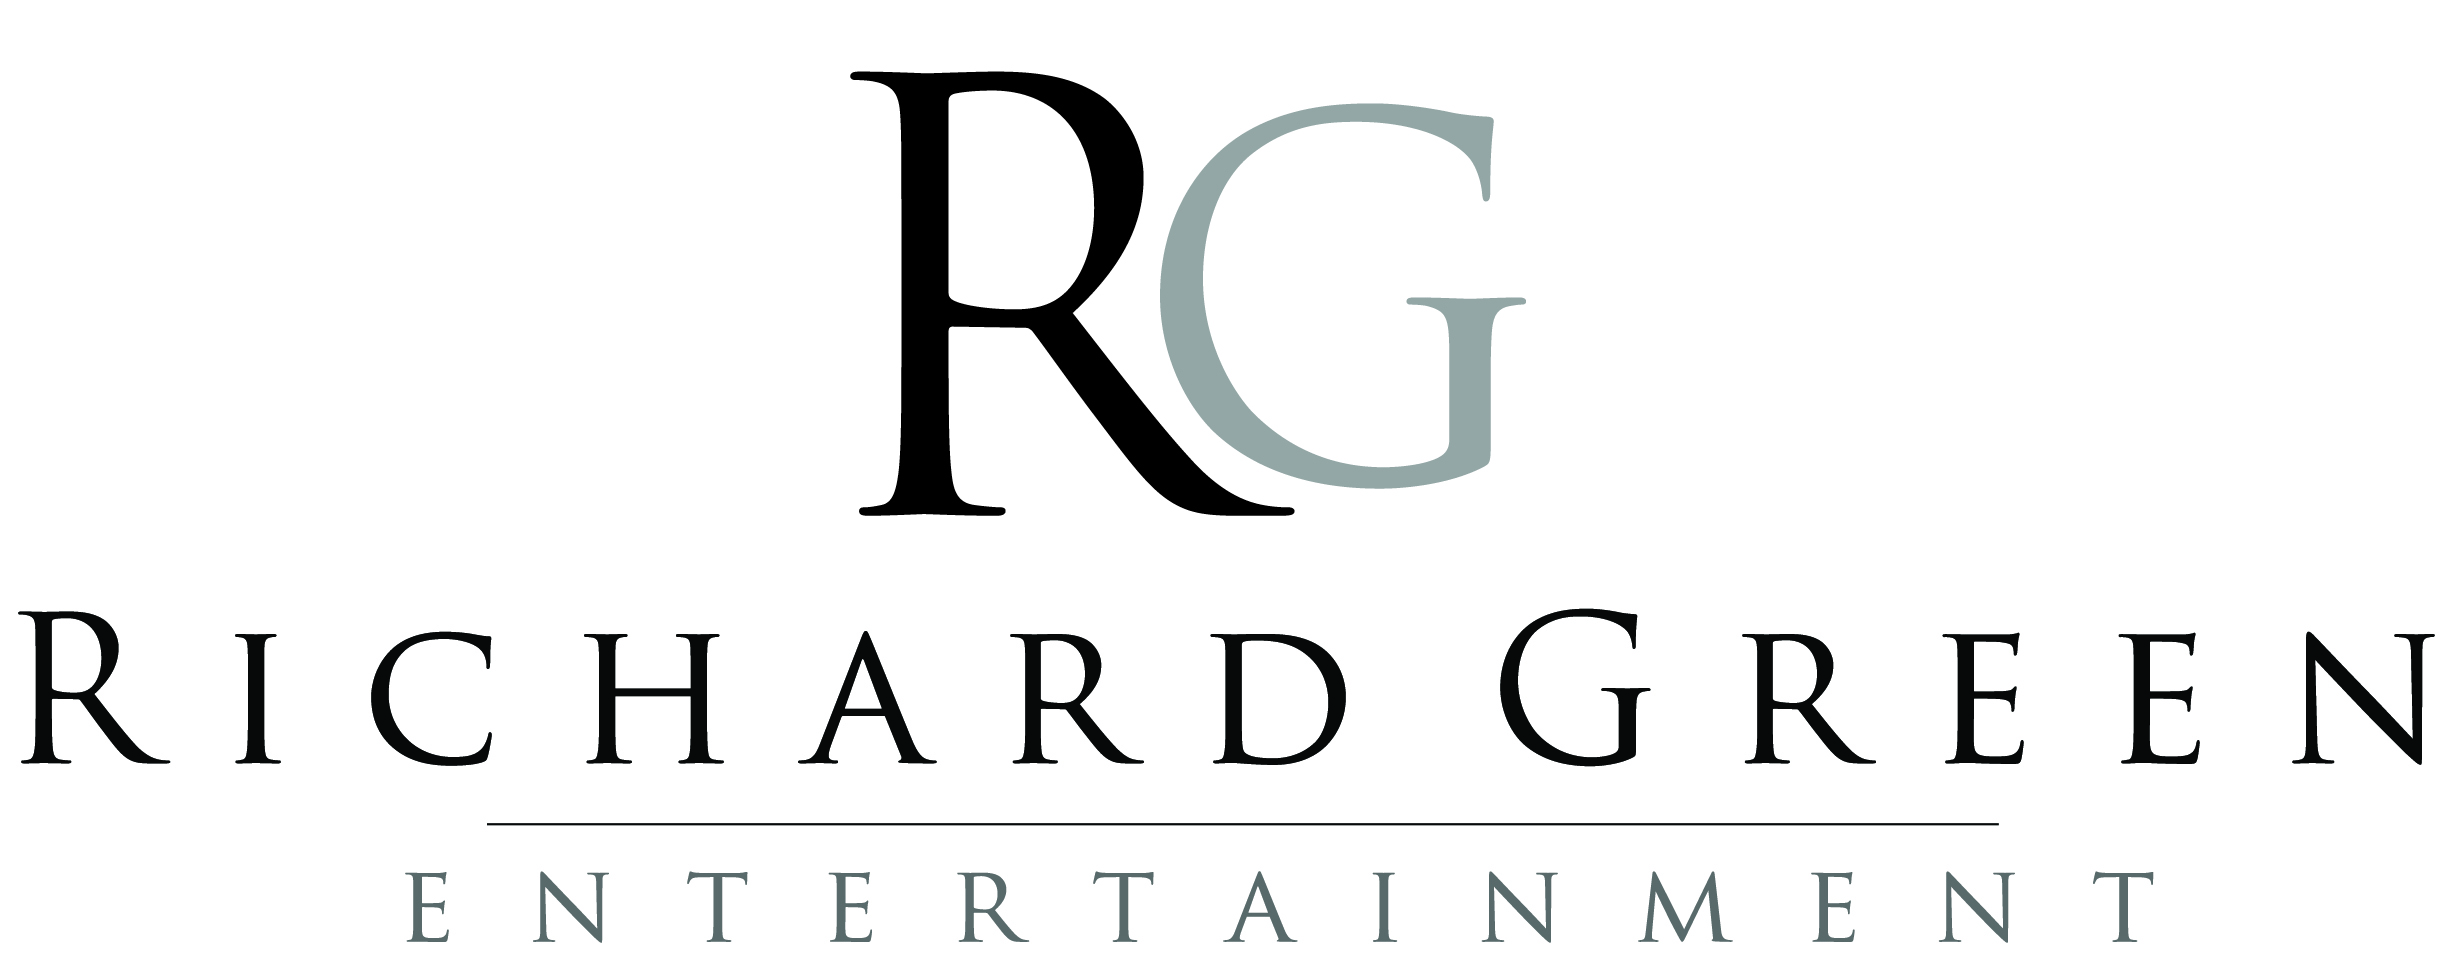 Richard Green Entertainment